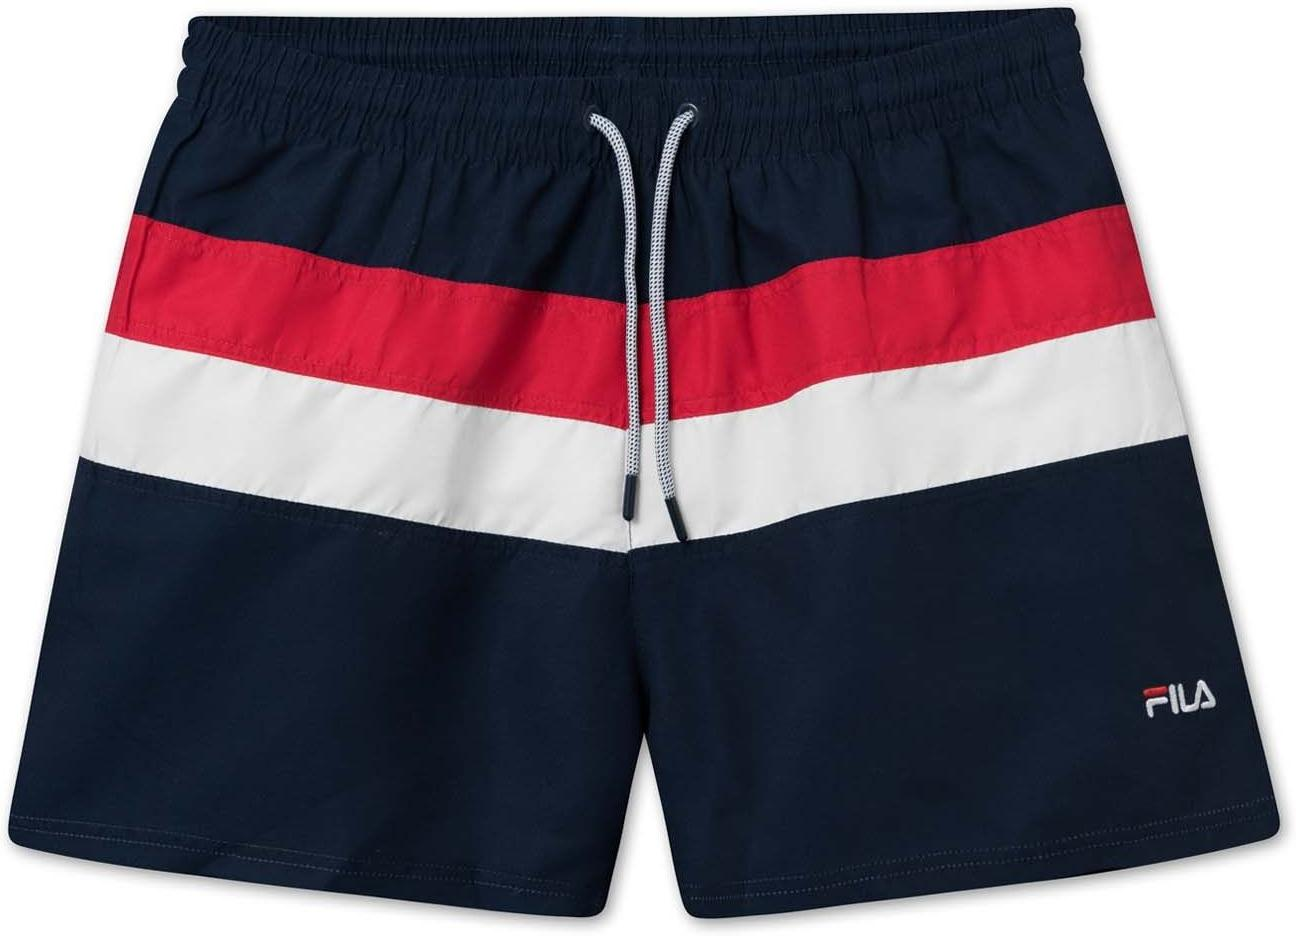 Šortky Fila MEN FILIPPO blocked swim shorts